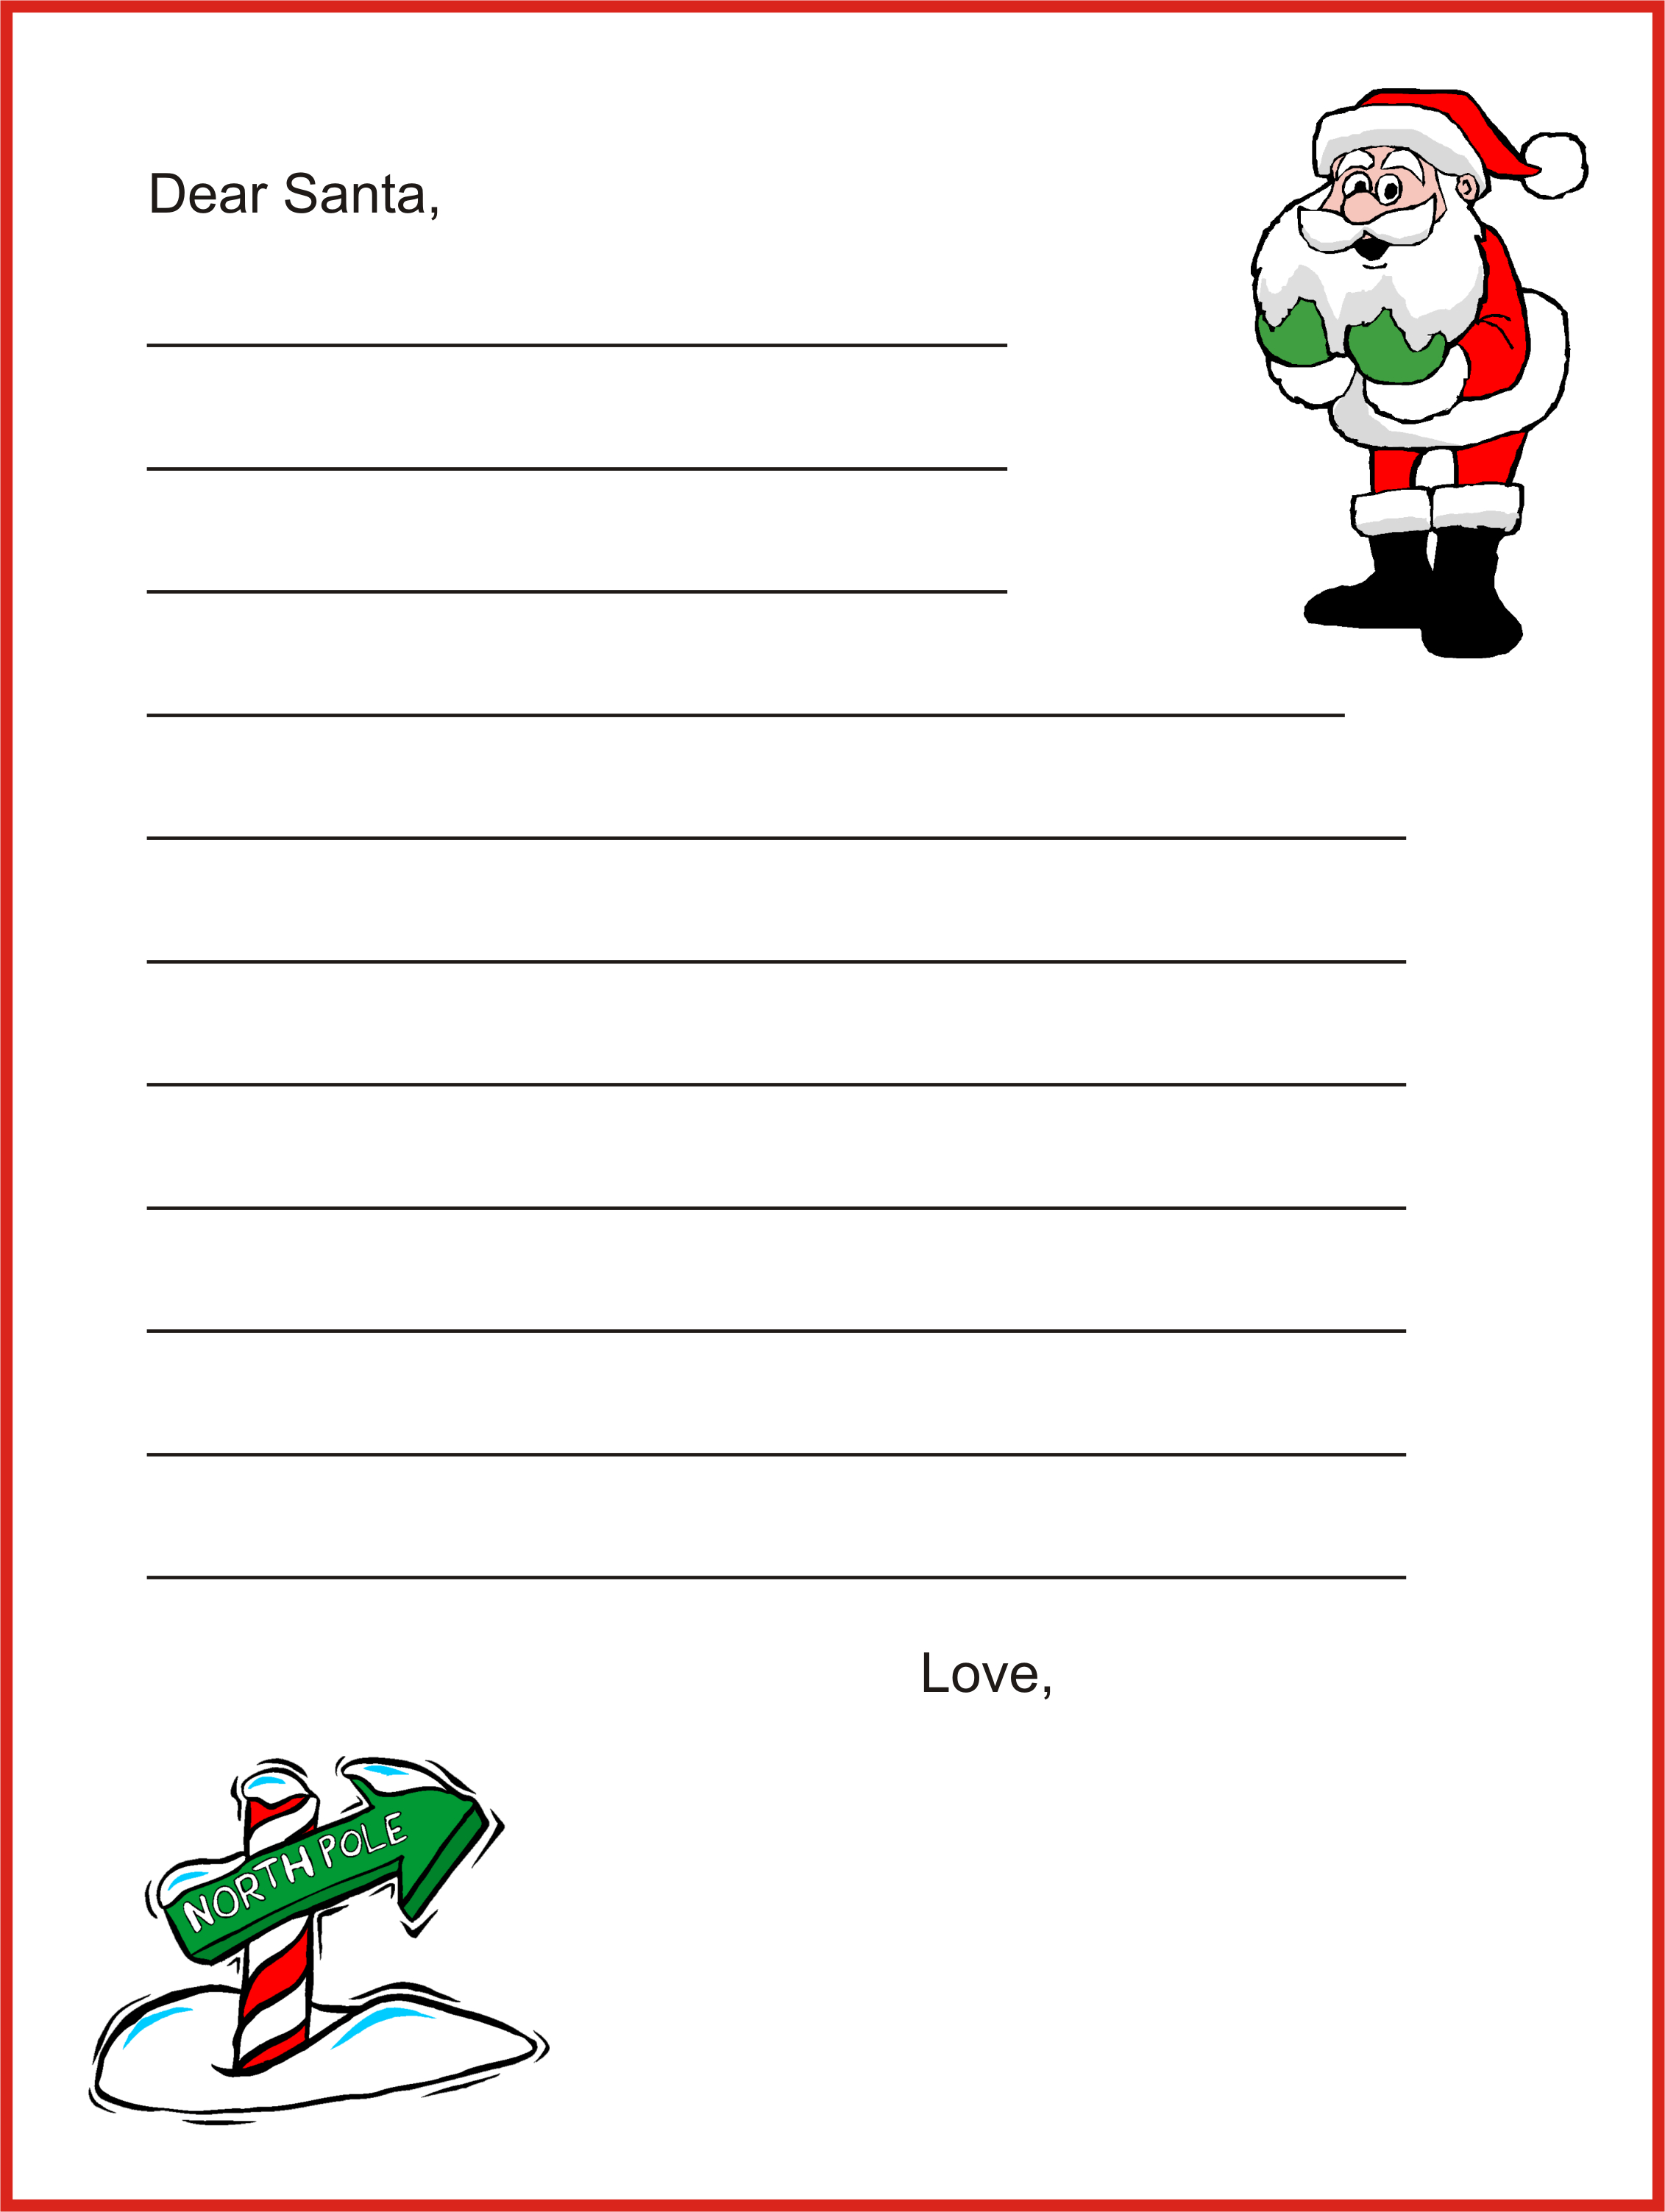 Your childs letter to santa could win a toys r us gift card la ontarionewsnorth is giving kids a way to win themselves a 50 gift card from toys r us this holiday season submit your childs letter to santa spiritdancerdesigns Image collections